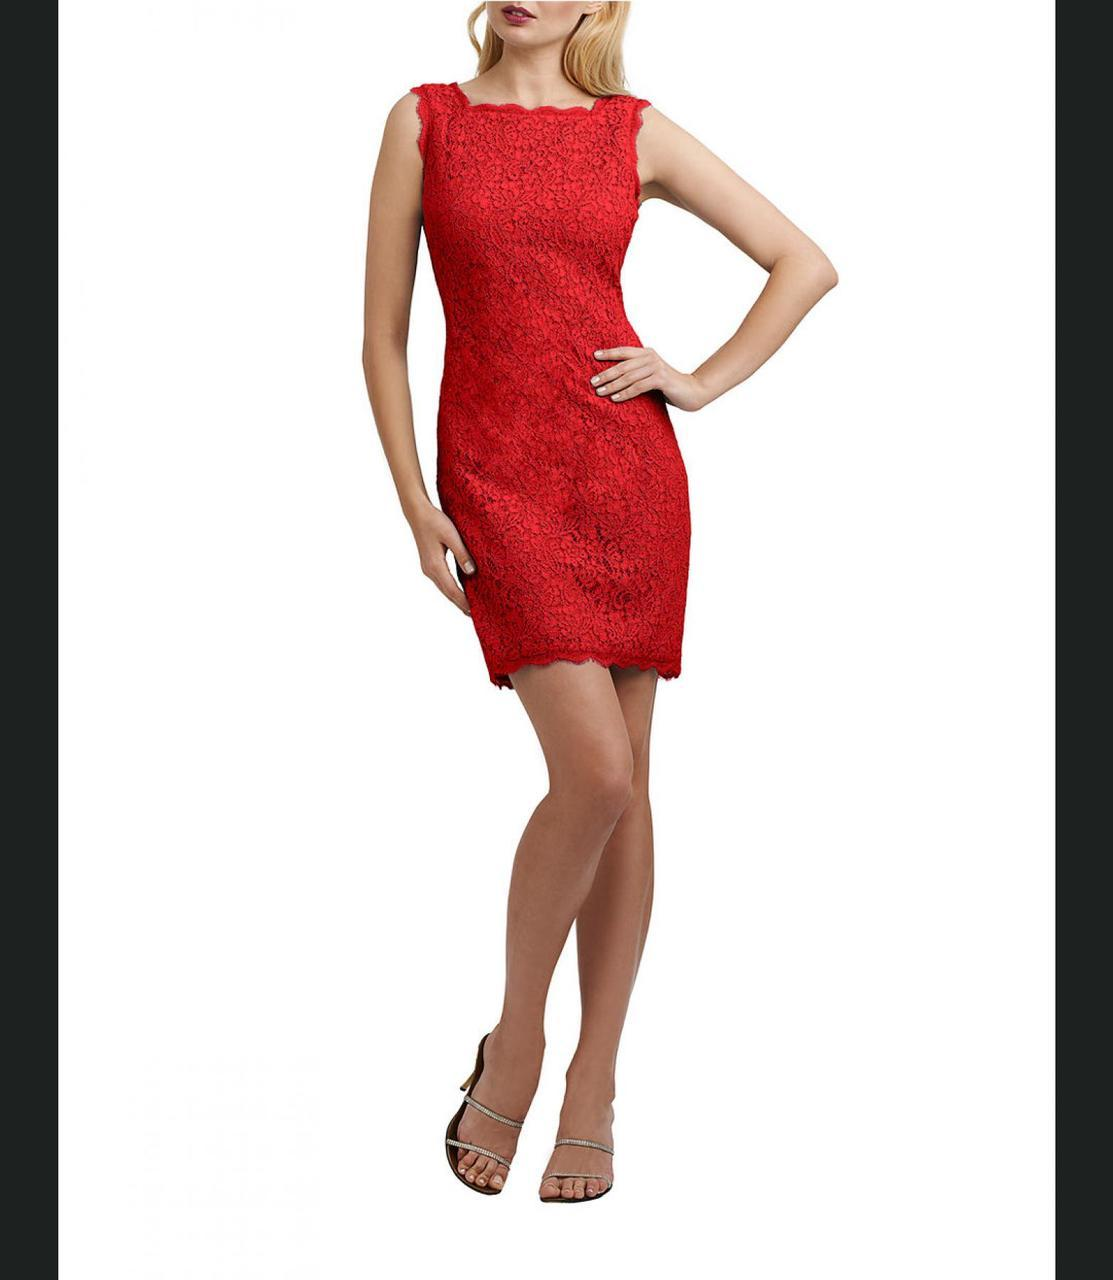 Adrianna Papell - Bateau Neck Lace Sheath Dress 41871750 in Red